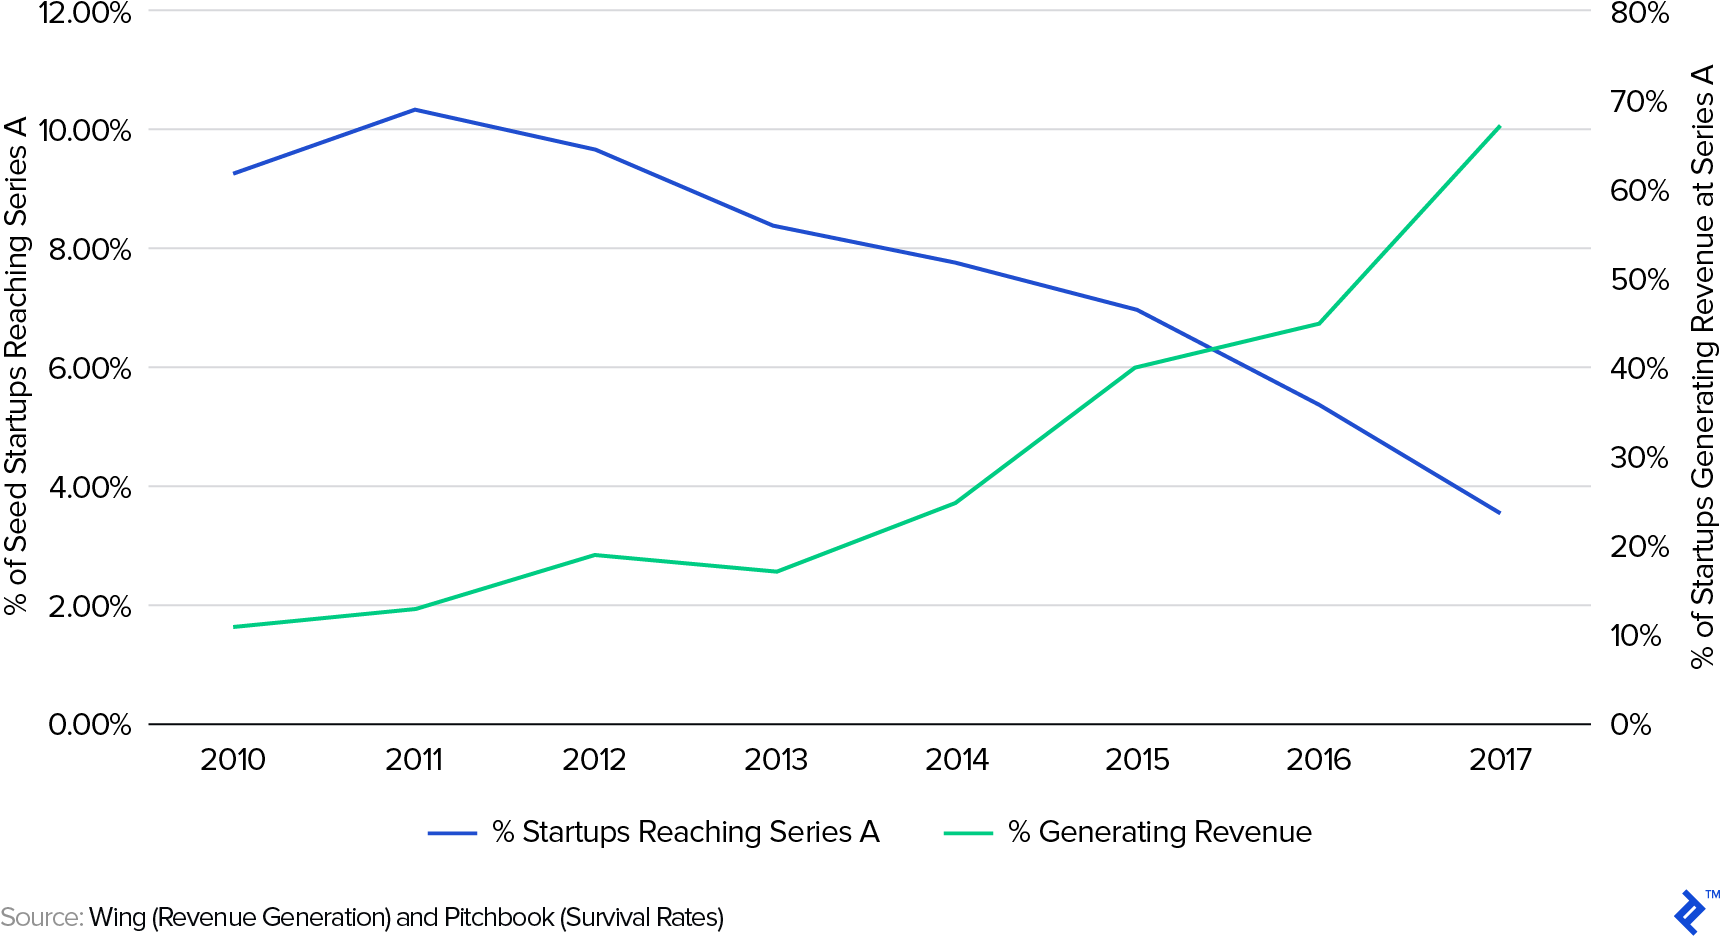 Fewer US Startups are Reaching Series A Rounds, but More are Generating Revenue